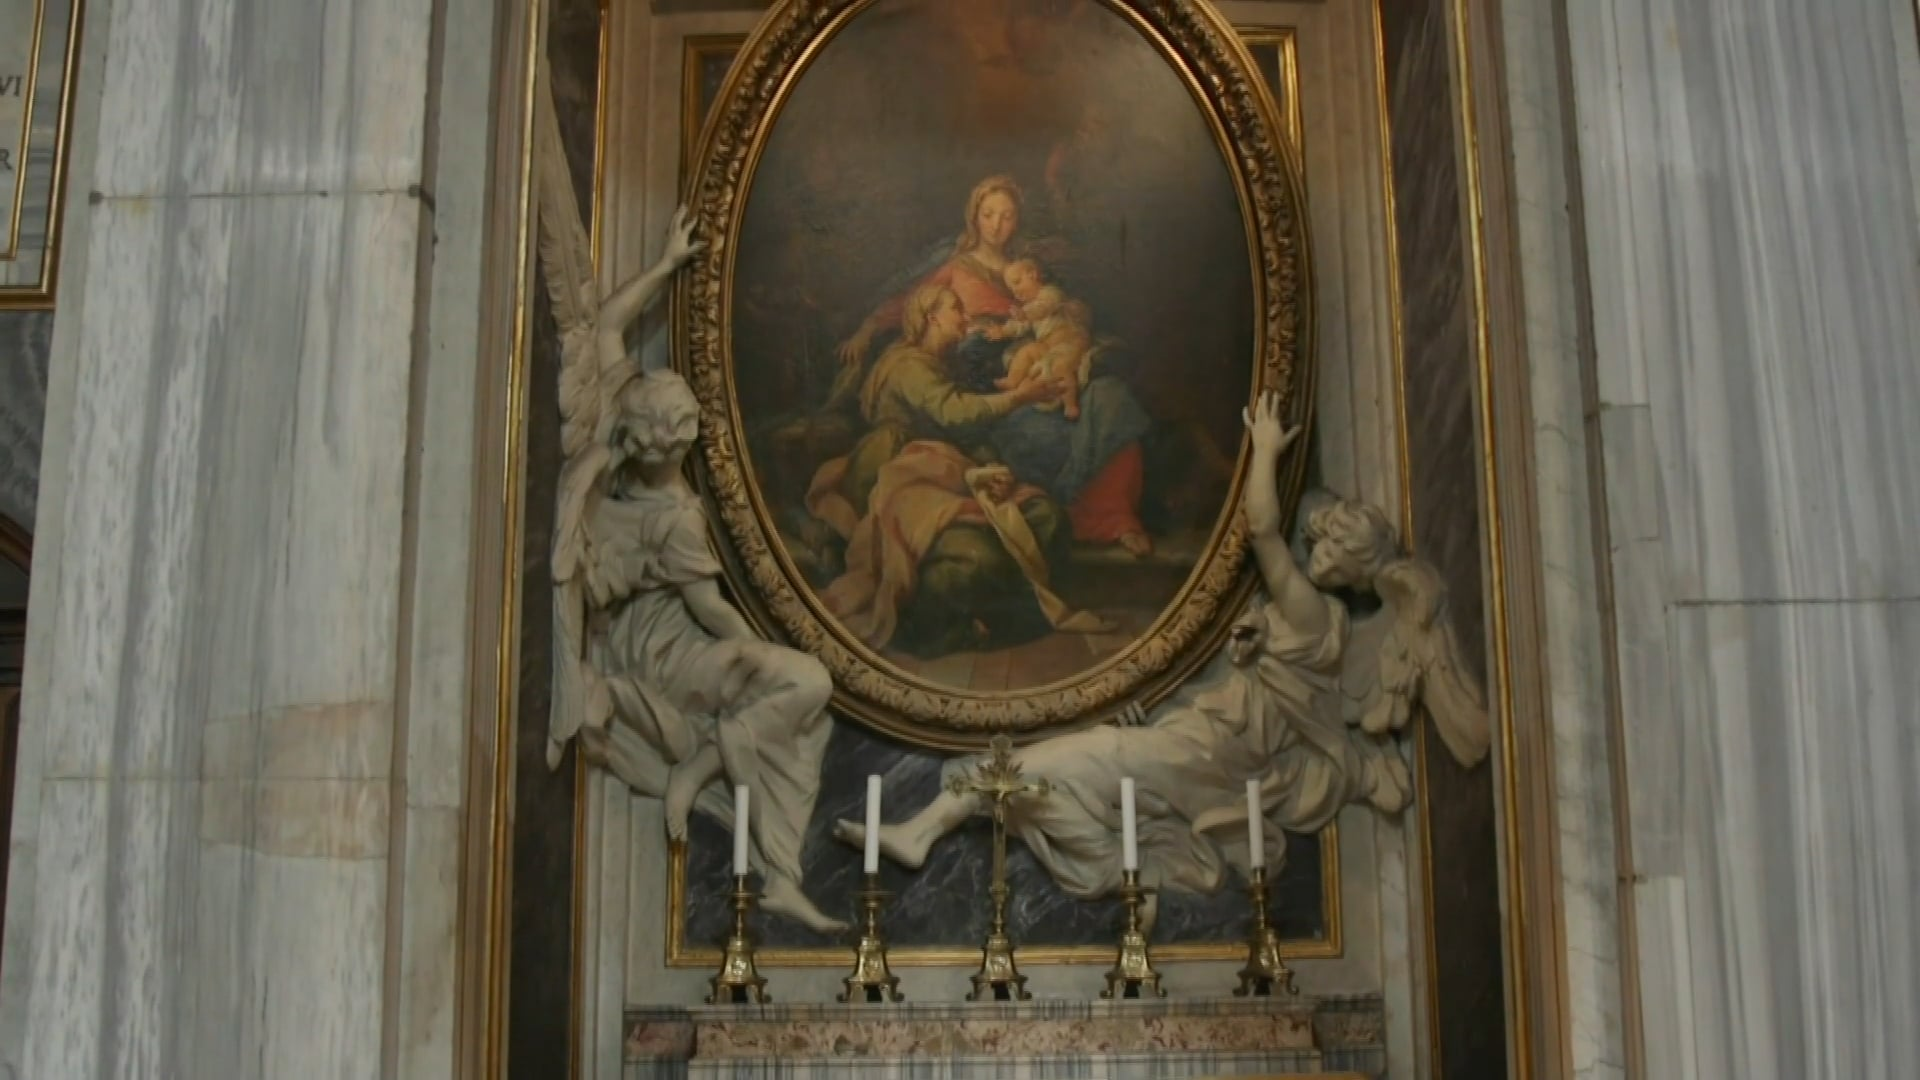 The Chaplet of Divine Mercy from the Basilica of St. Mary Major